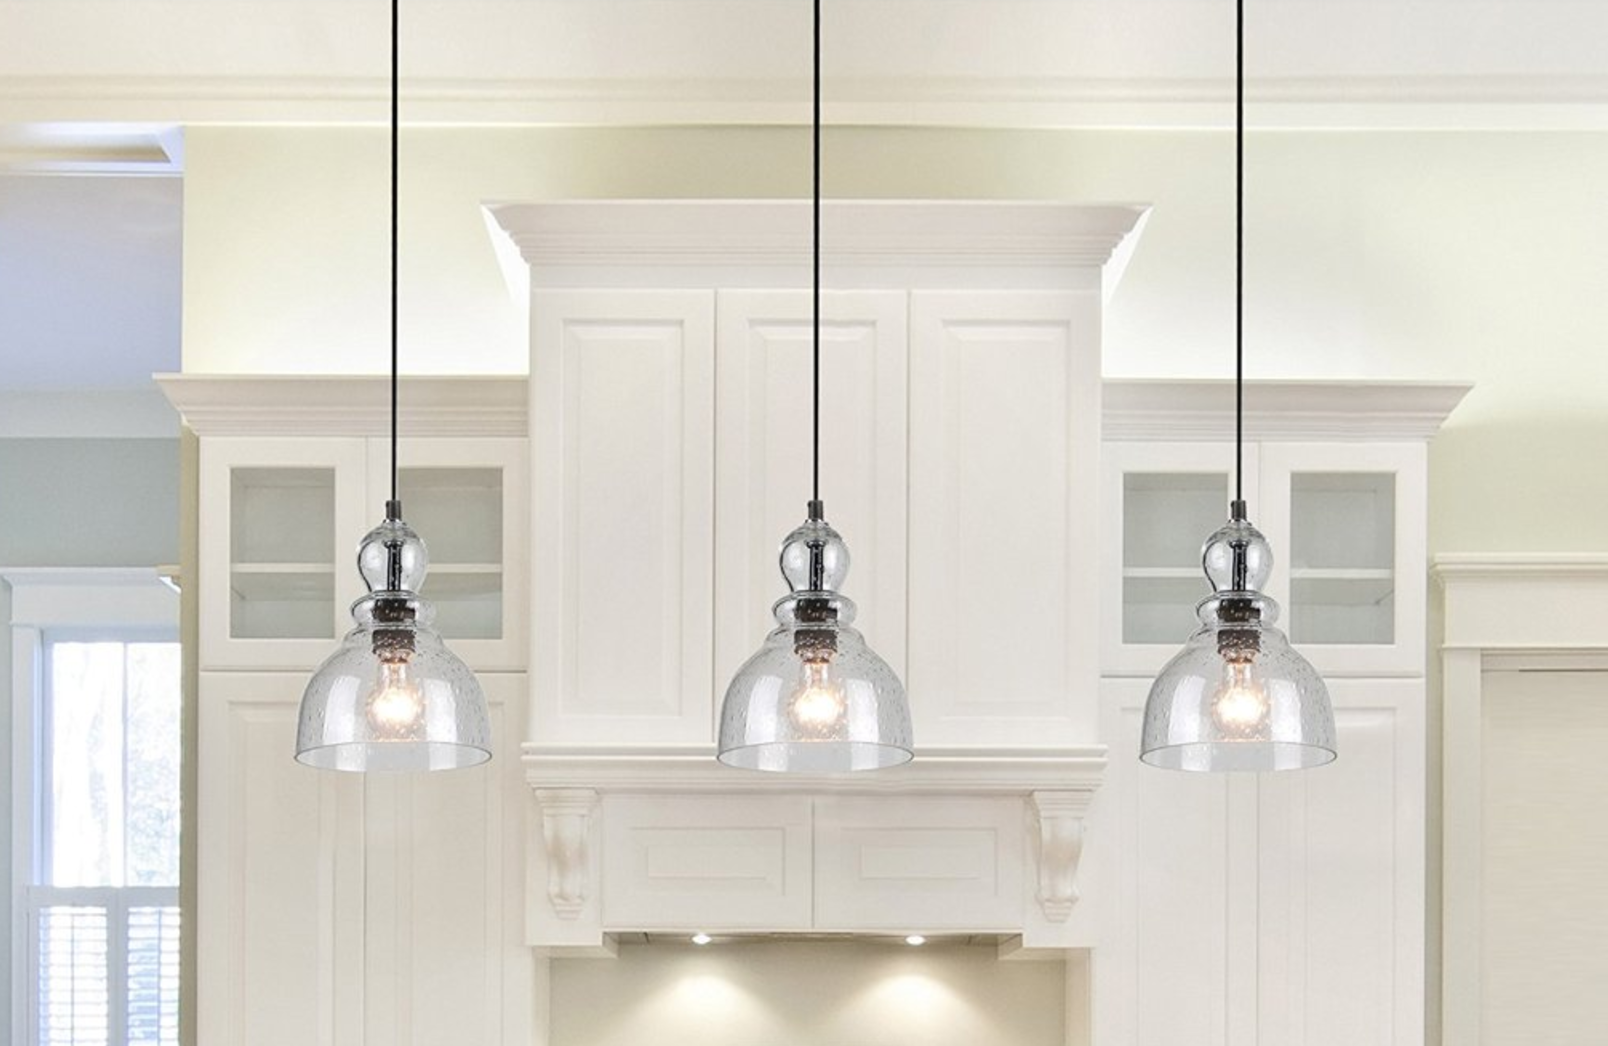 WestinghouseIndustrial One-Light Adjustable Mini Pendant - with Handblown Clear Seeded Glass, Oil Rubbed Bronze Finish